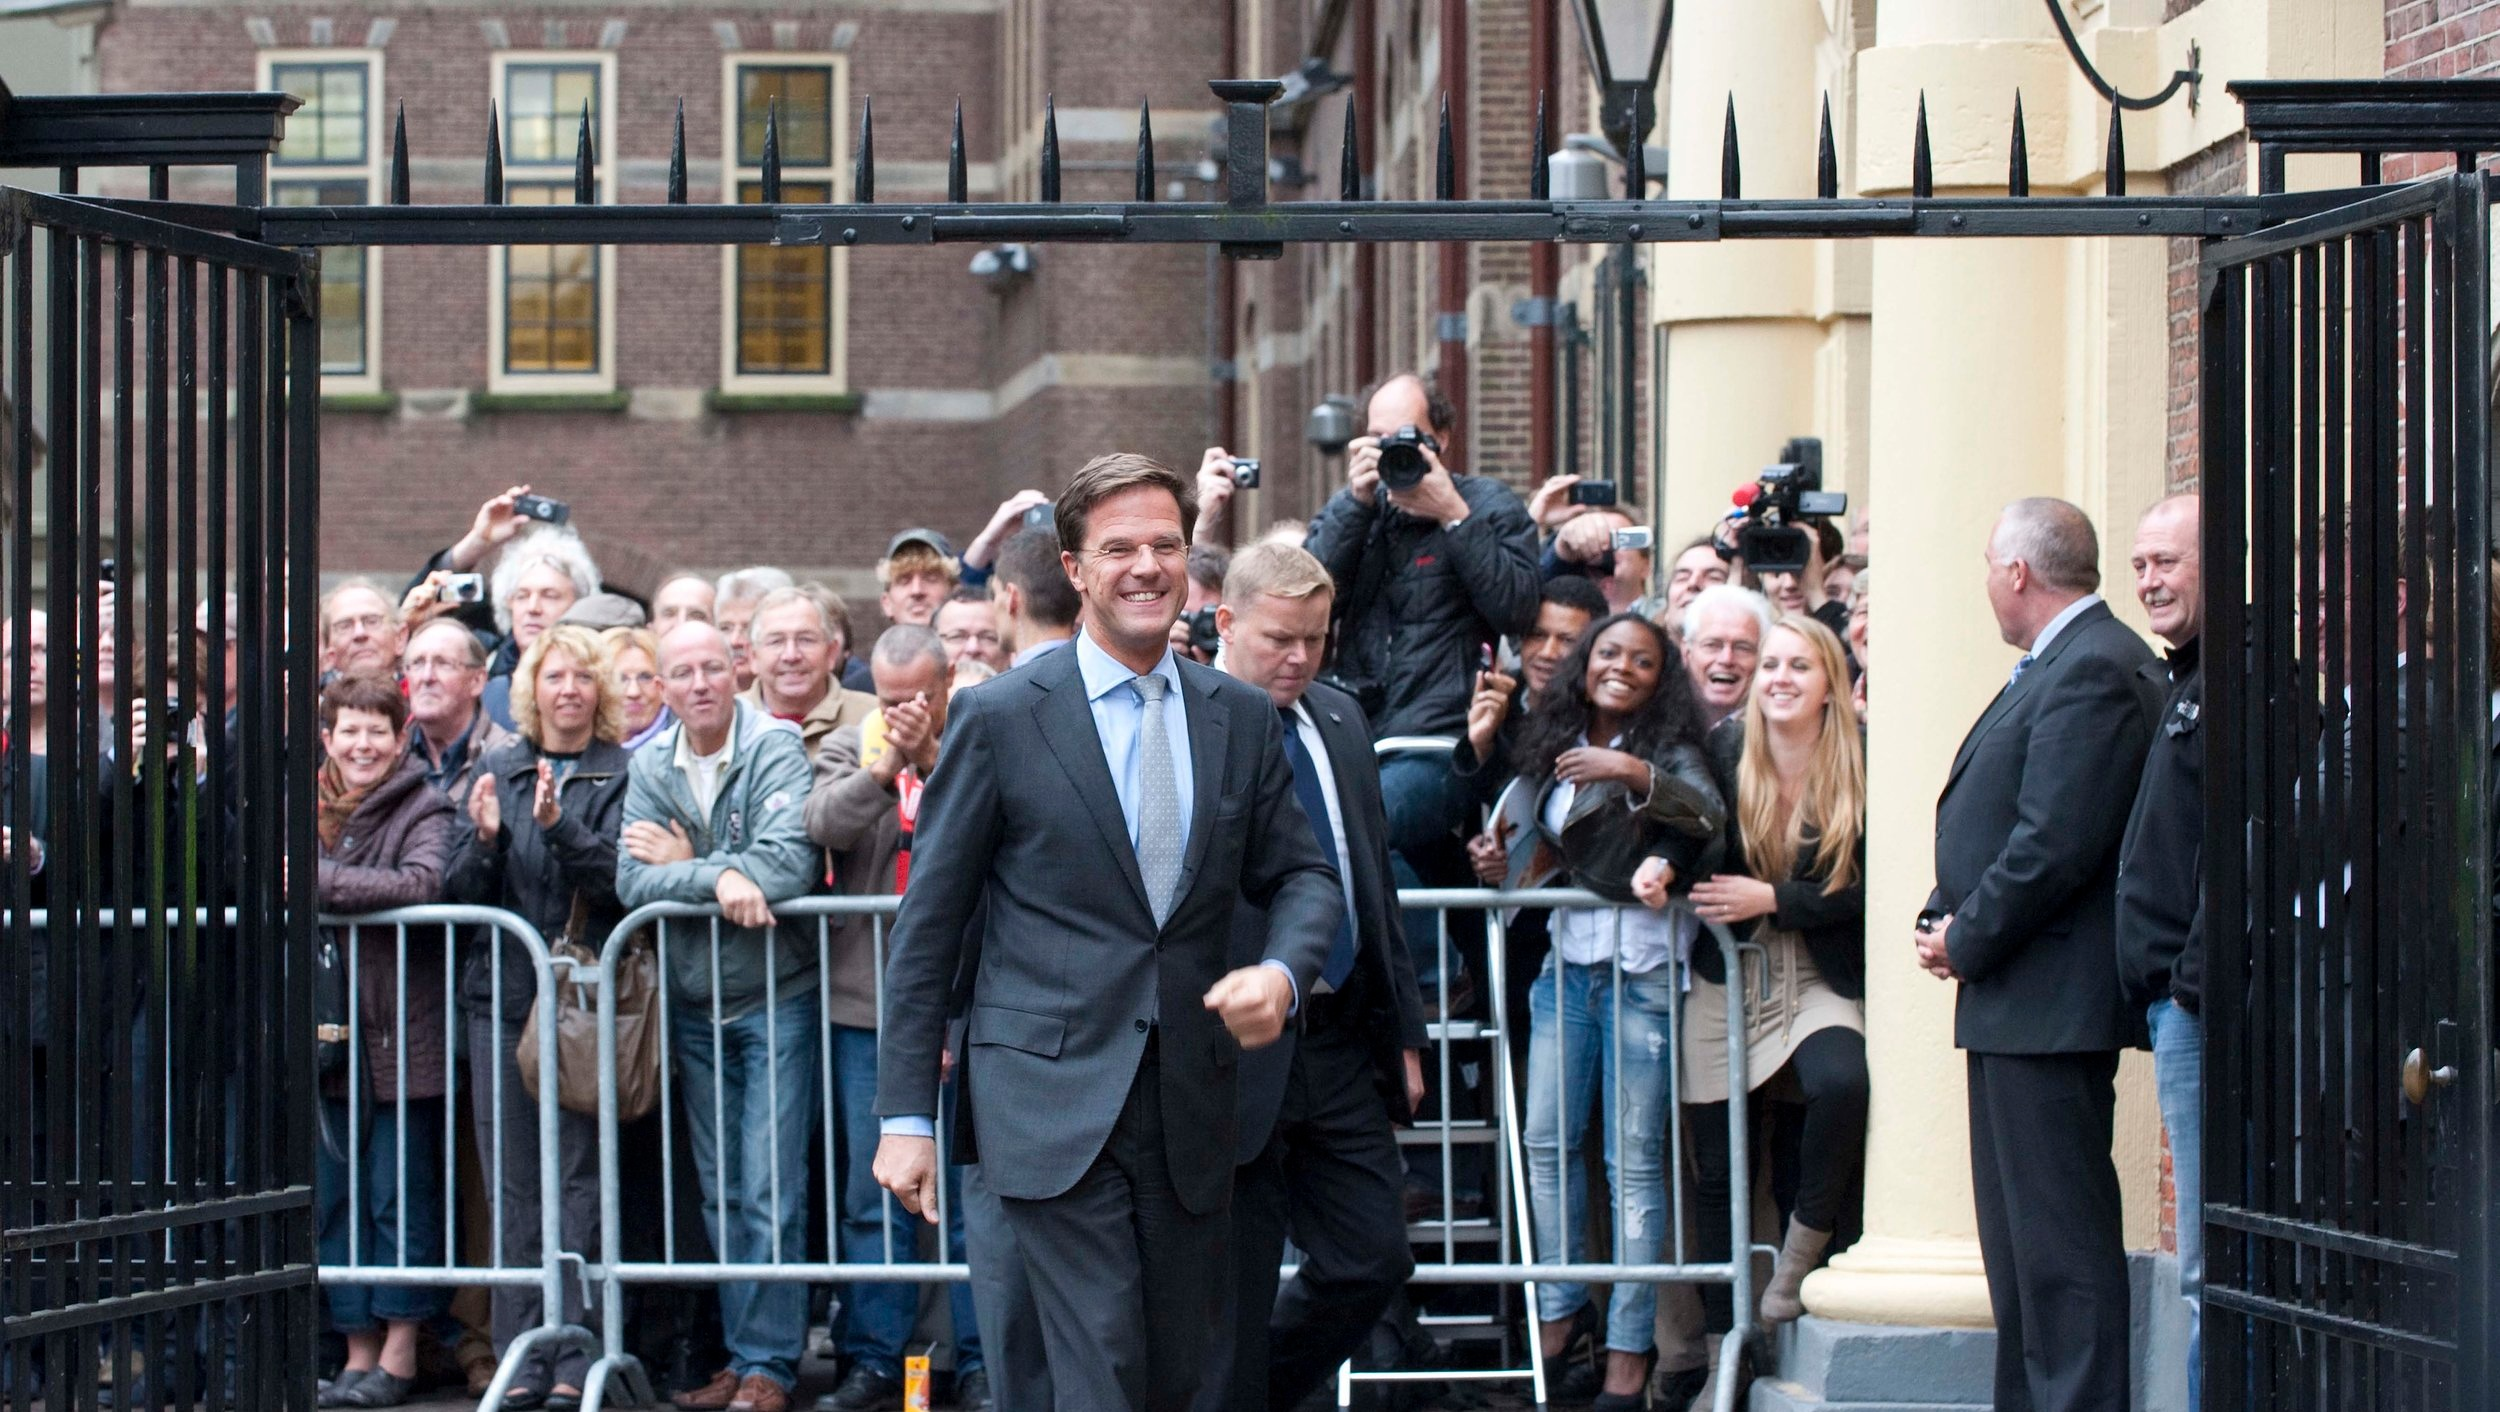 Image from Minister-president Rutte, all rights reserved.